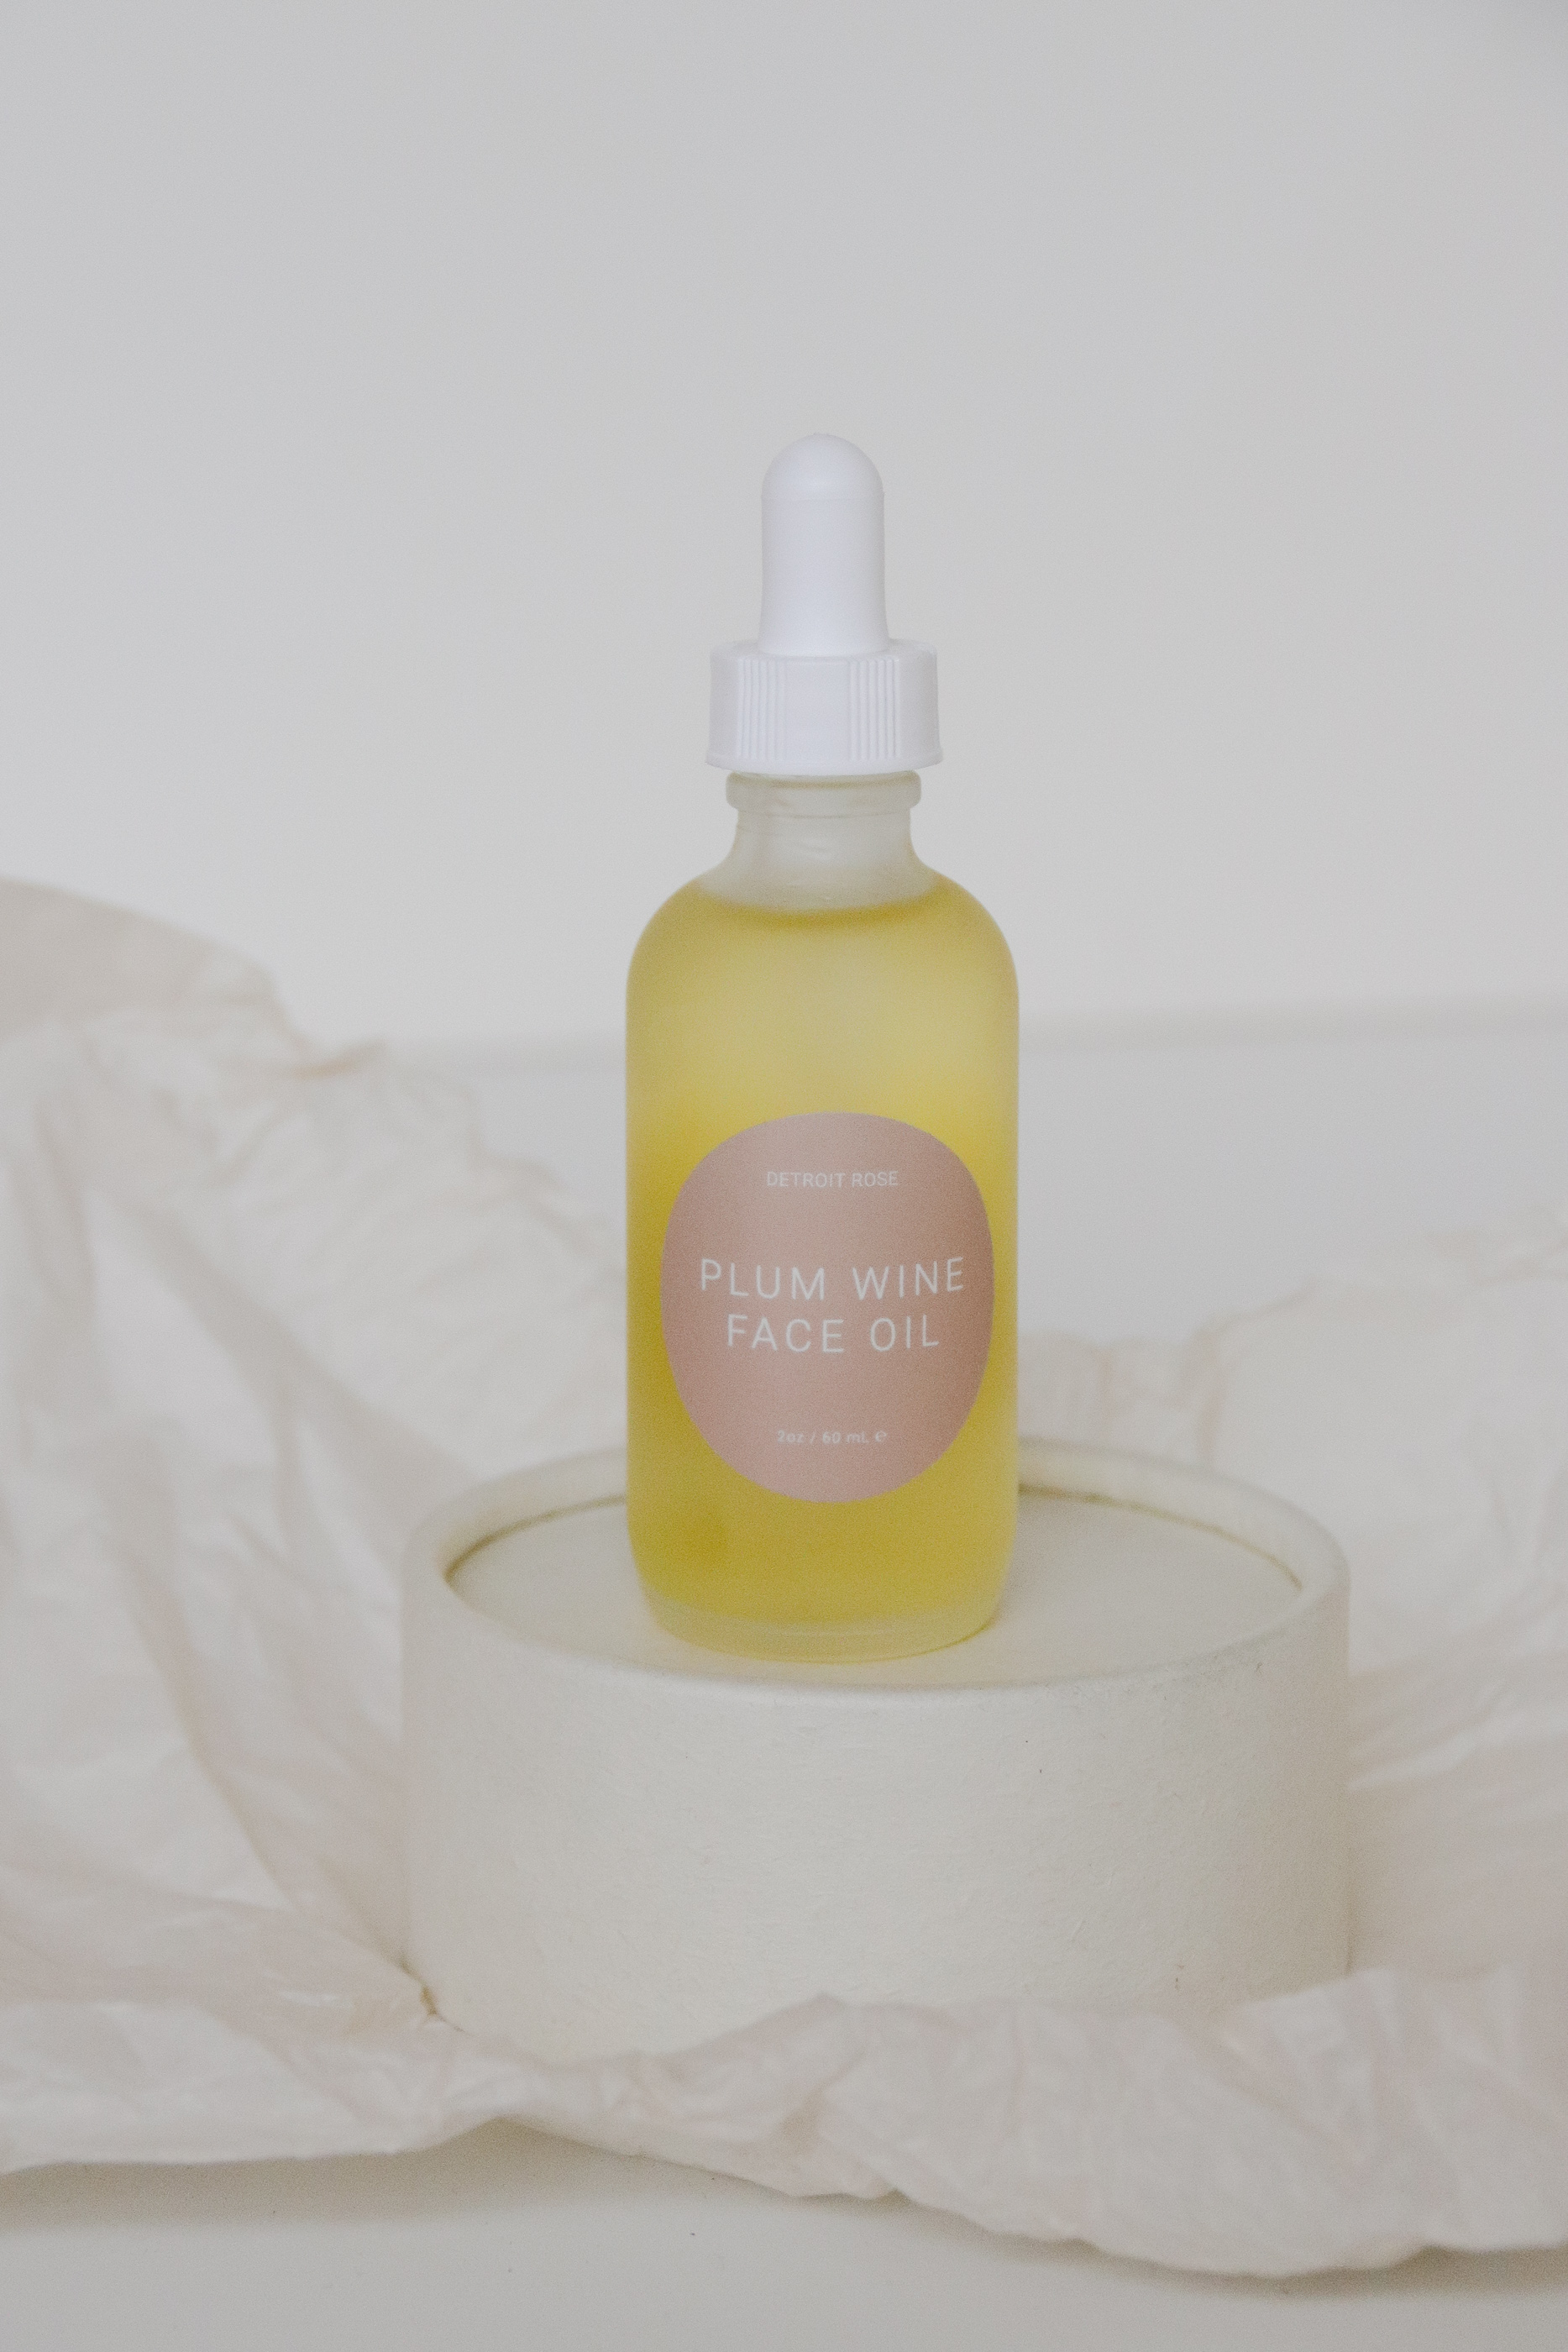 Plum Wine Face Oil Detroit Rose - $52